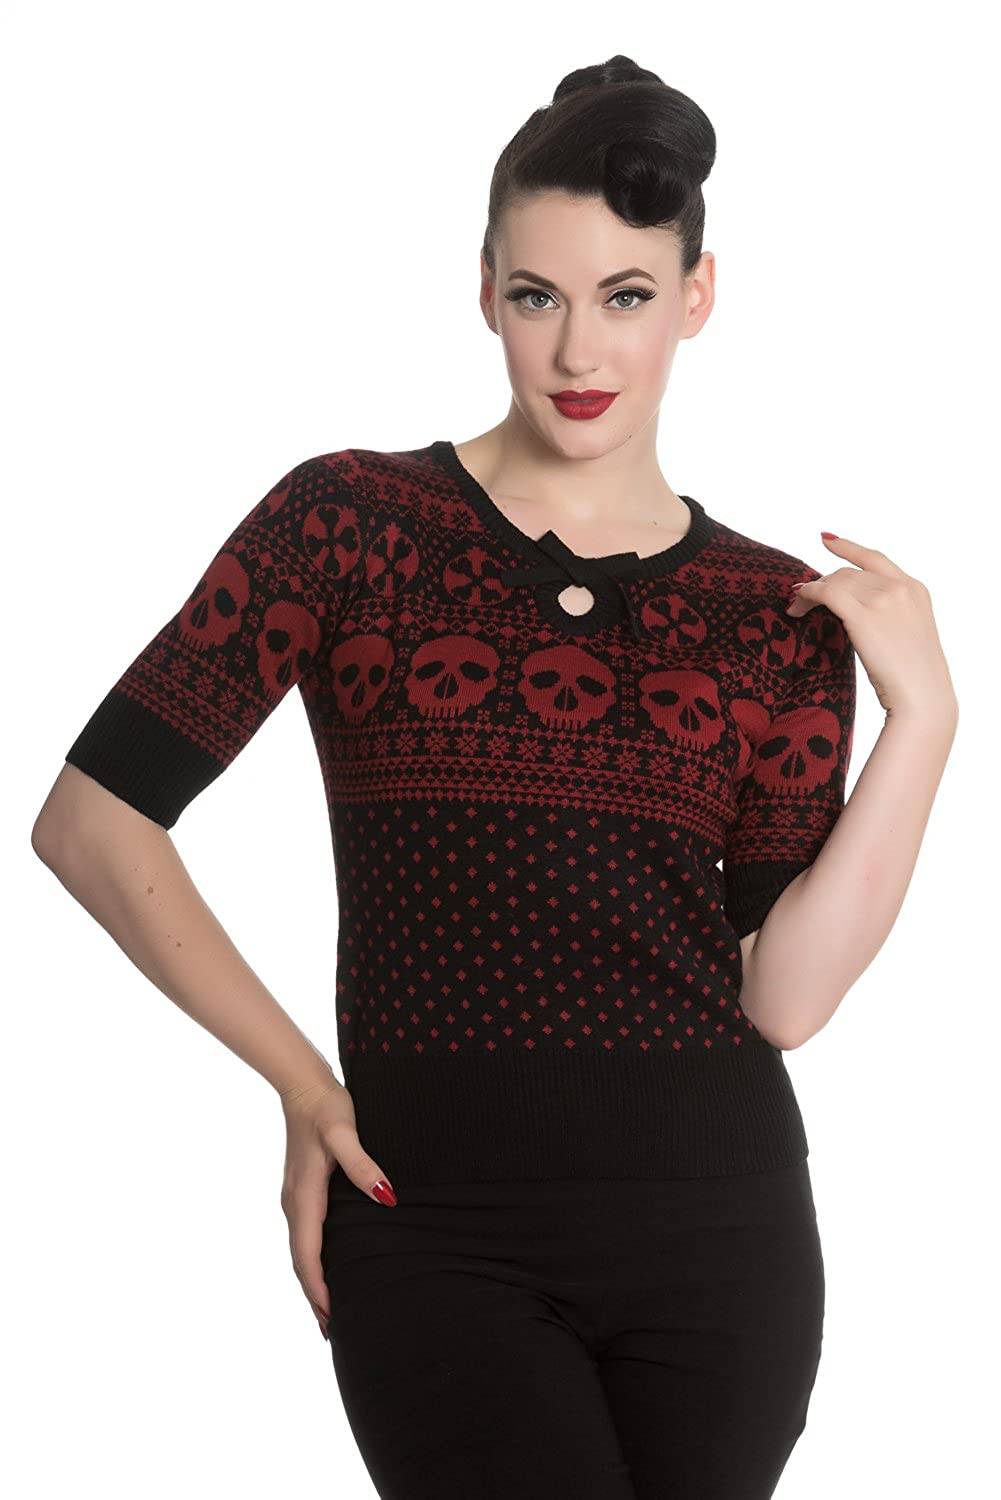 Vintage Retro Halloween Themed Clothing Hell Bunny Yule Skull Knitted Christmas Jumper Sweater Top $45.56 AT vintagedancer.com